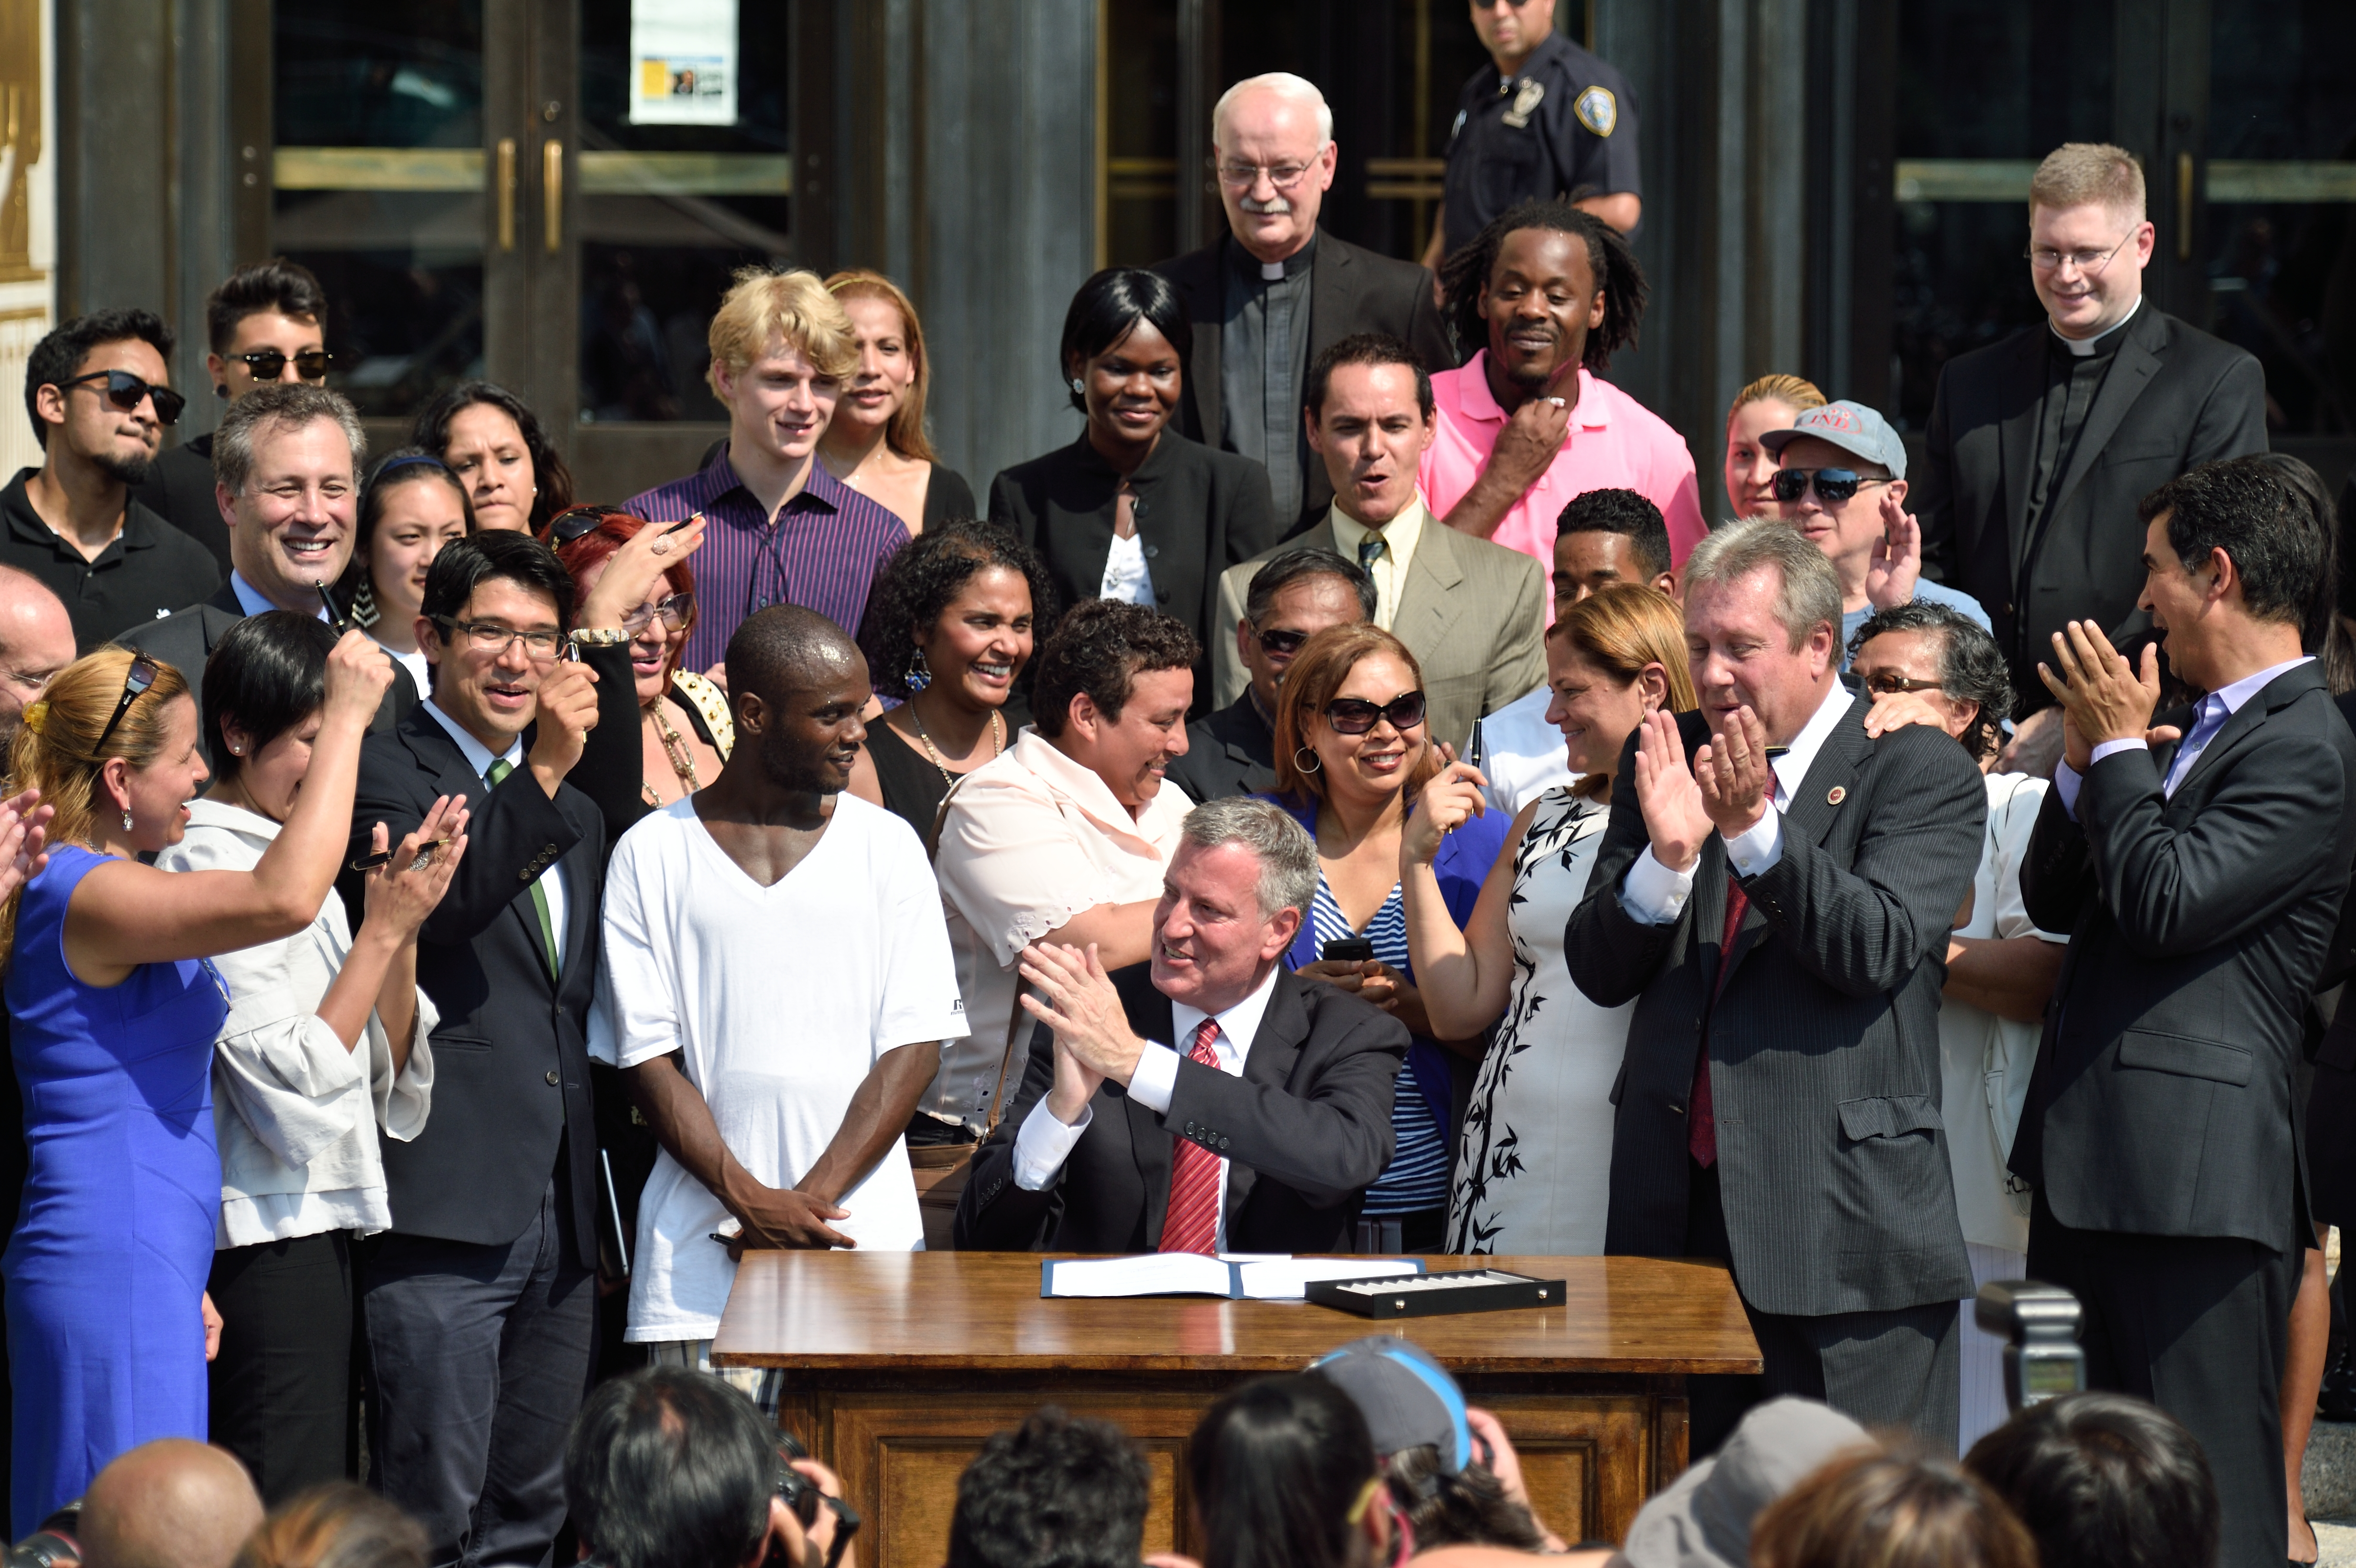 Mayor Bill de Blasio signs the municipal I.D. law. (Photo: Rob Bennett/Mayoral Photography Office)